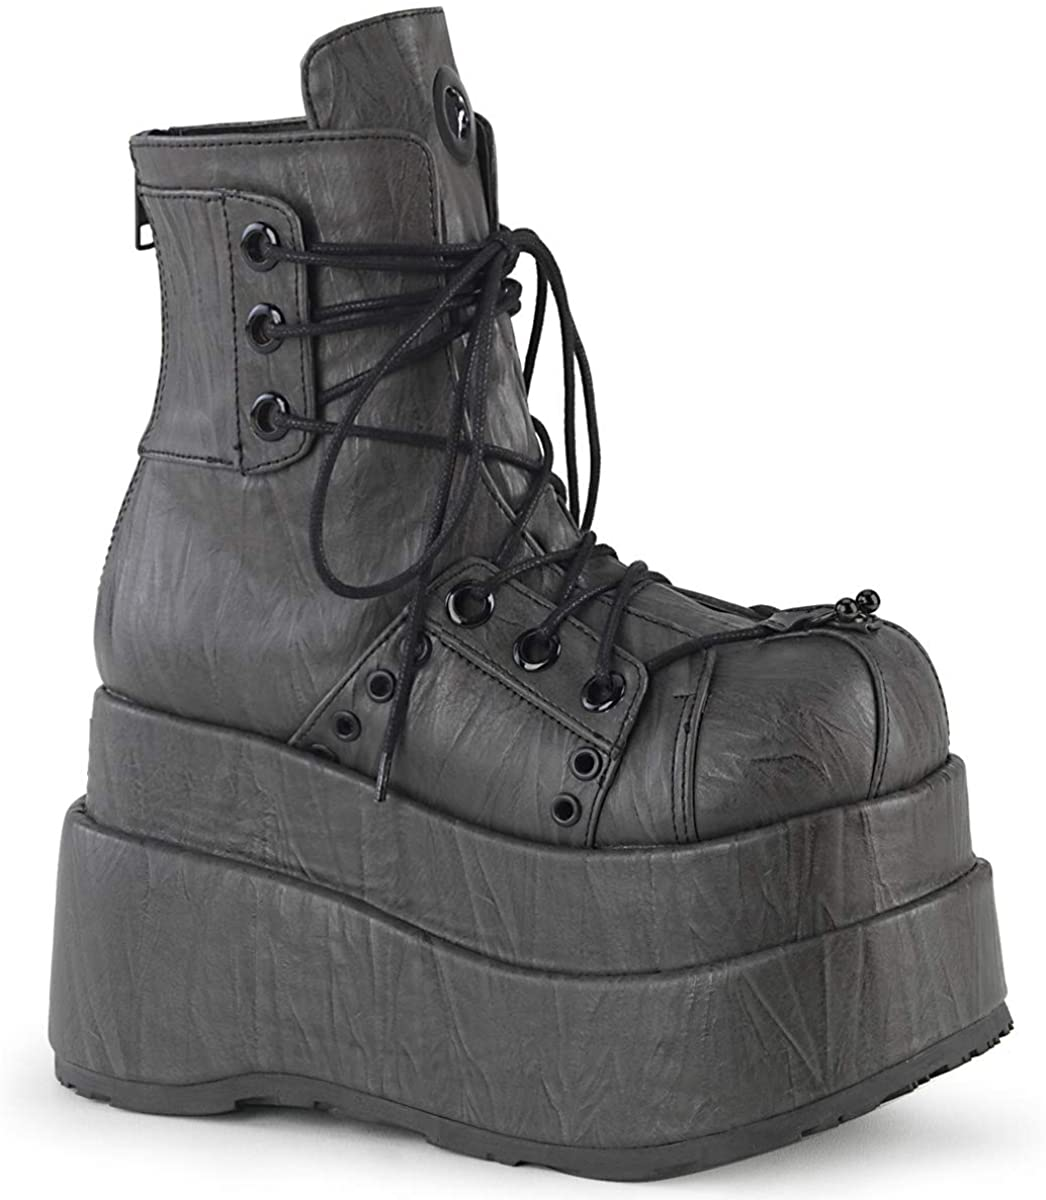 Demonia Womens BEAR-120 Tiered Platform Ankle Boot Black